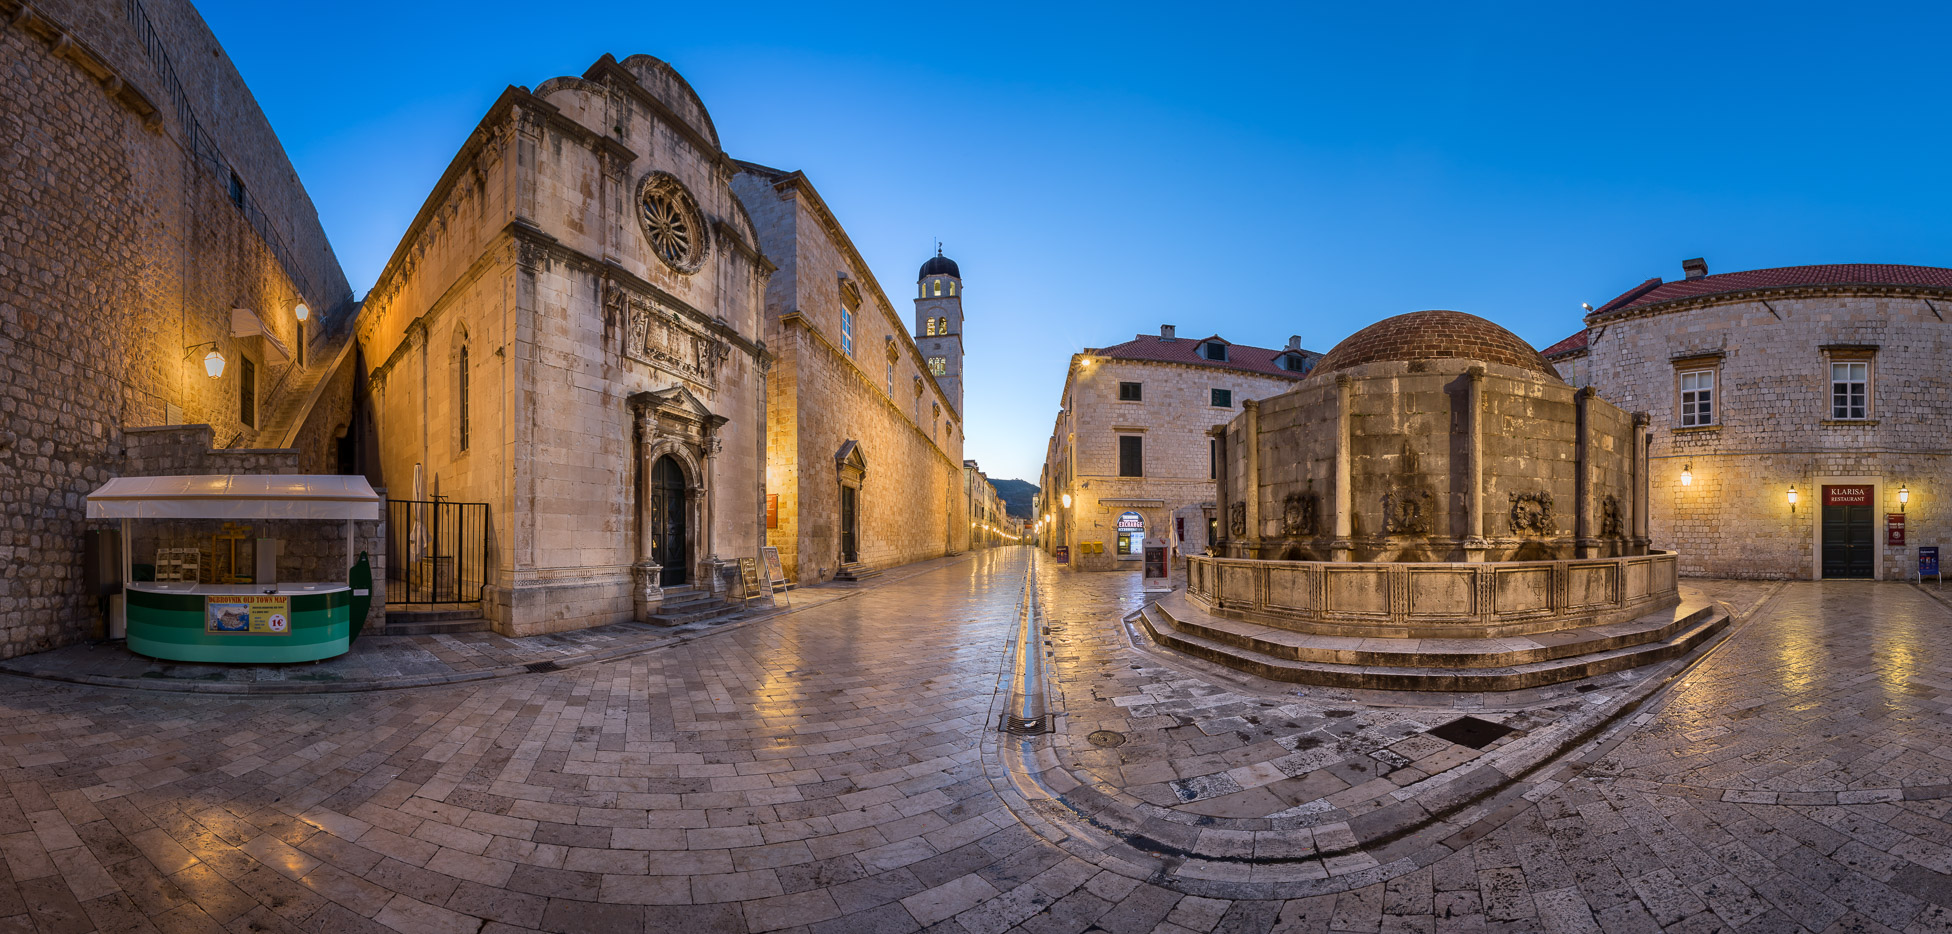 Panorama of Great Onofrio Fountain and Holy Saviour Church in the Evening, Dubrovnik, Croatia